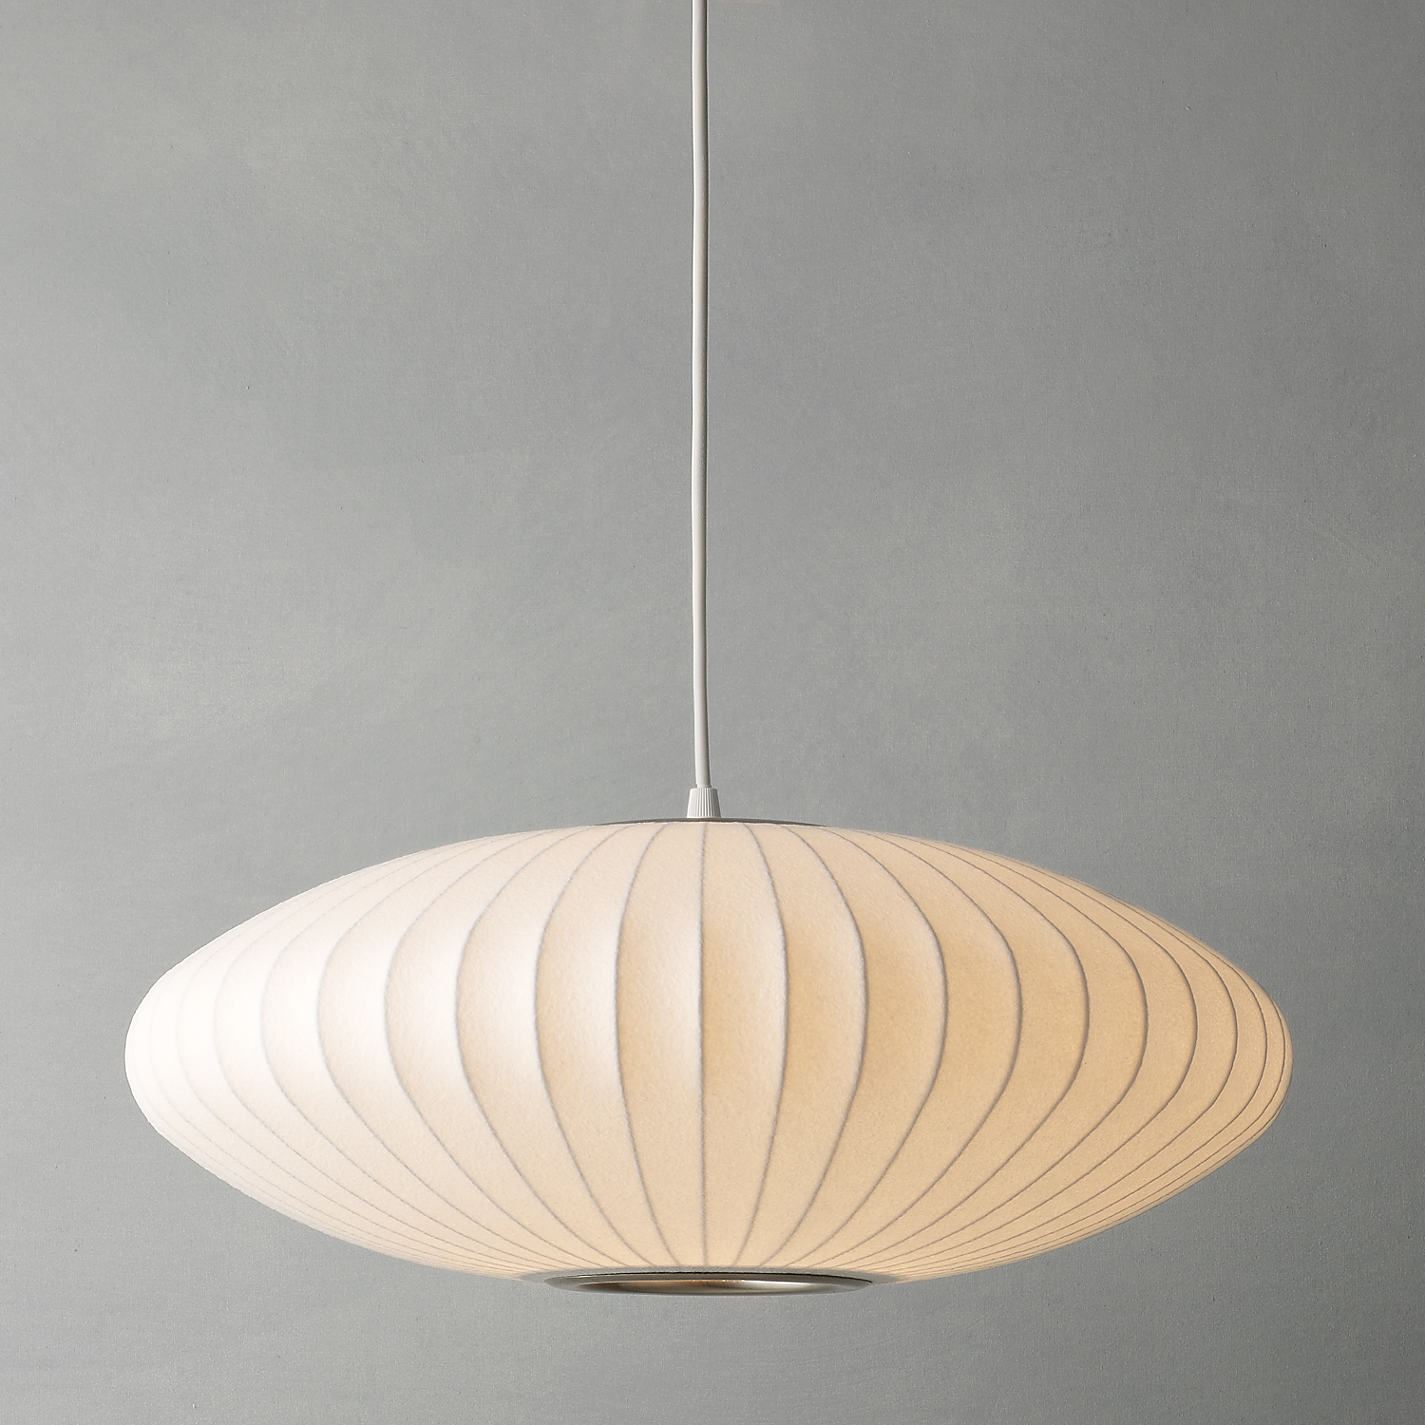 SAUCER lights by GEORGE NELSON | moderndesigninterior.com